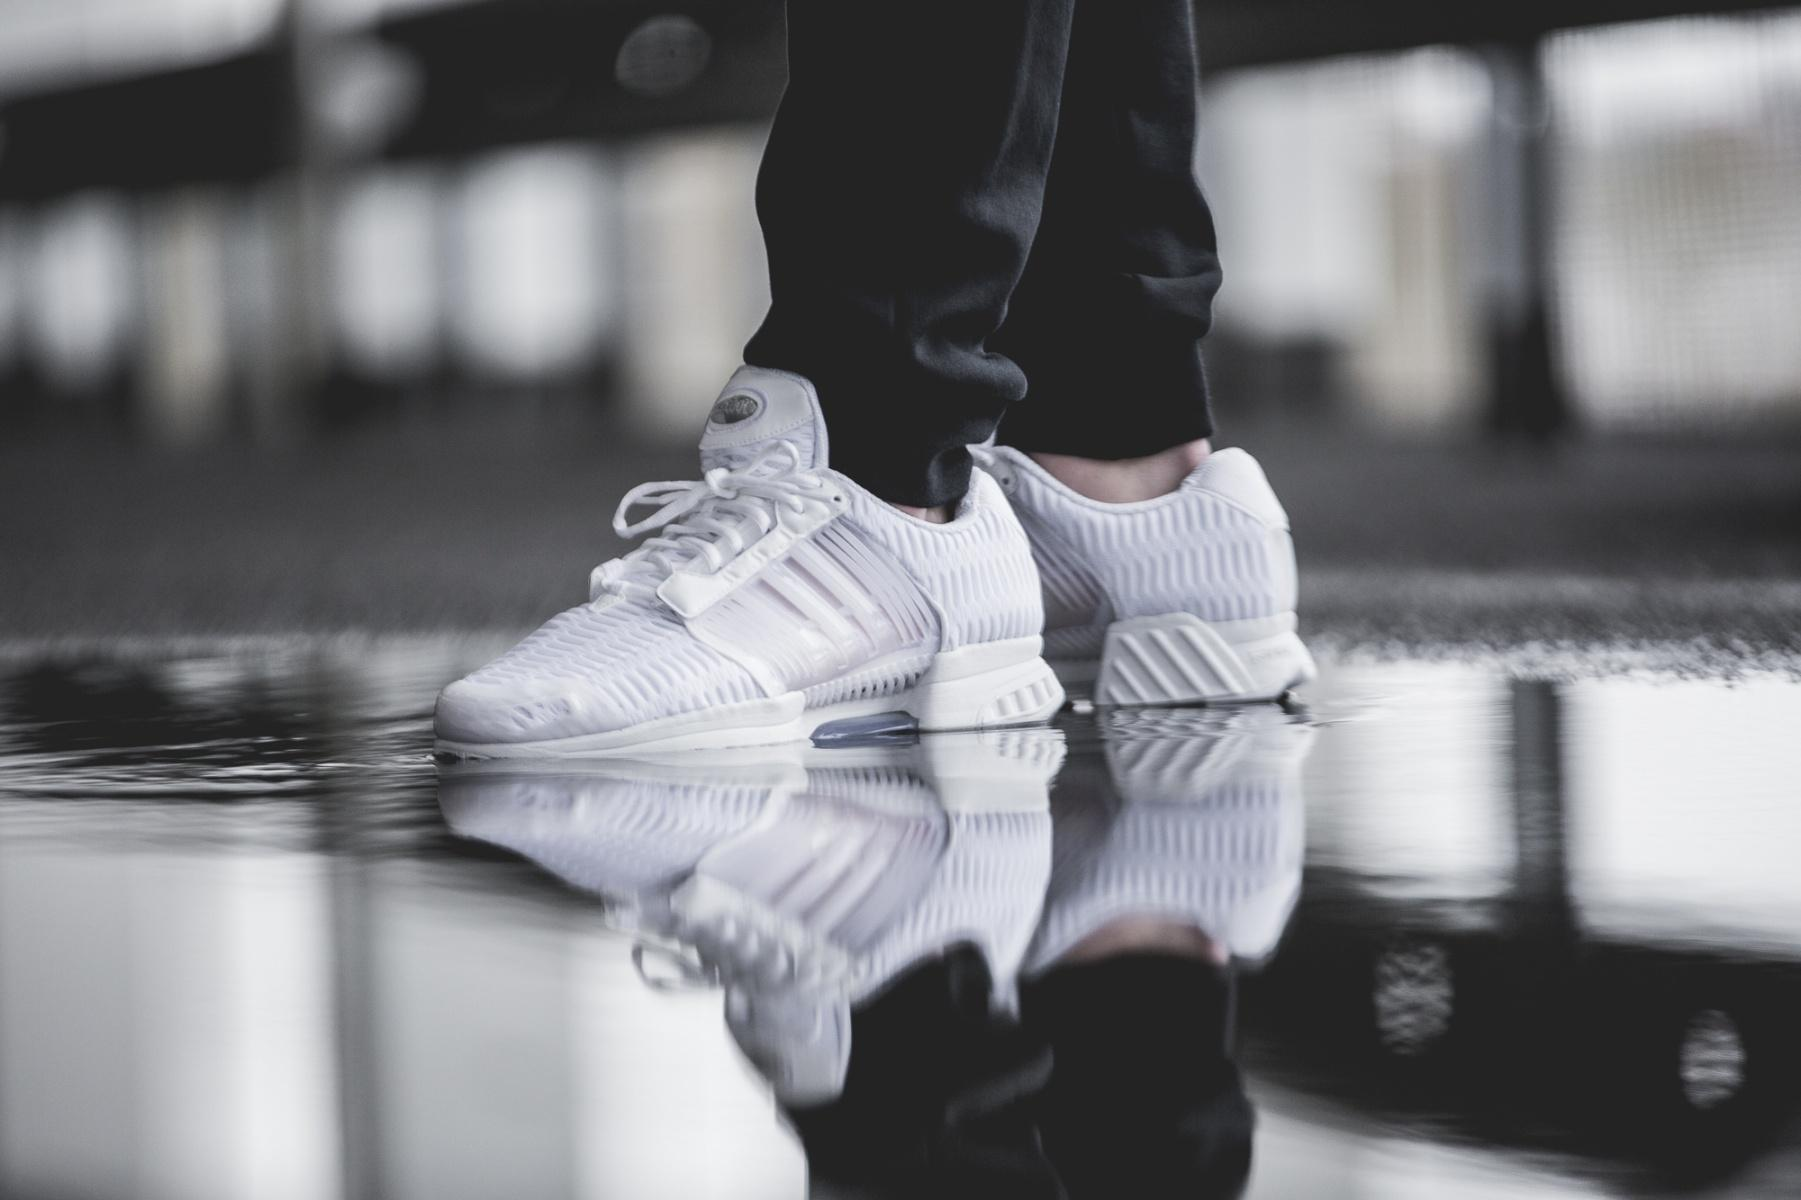 $120 MEN'S ORIGINALS CLIMACOOL 1 SHOES @ adidas